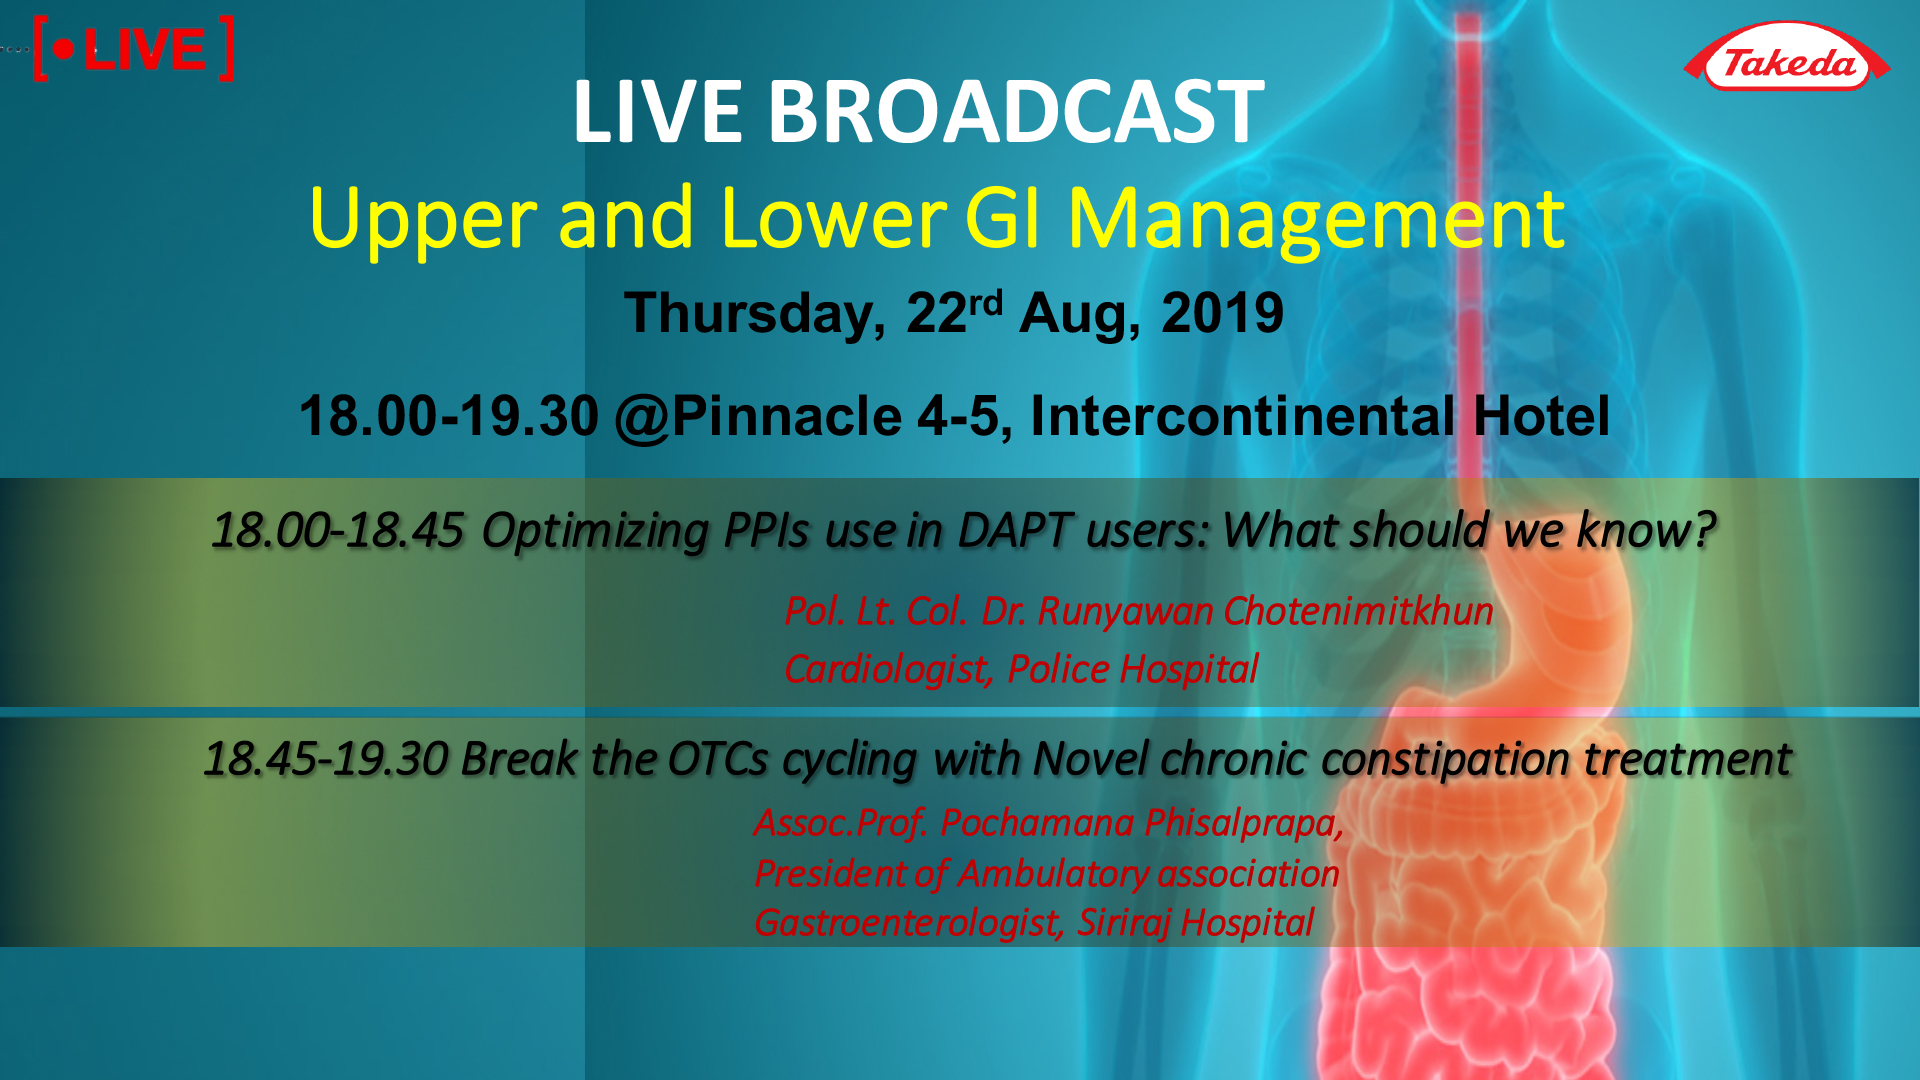 ชมย้อนหลัง LIVE BROADCAST | Upper and Lower GI Management